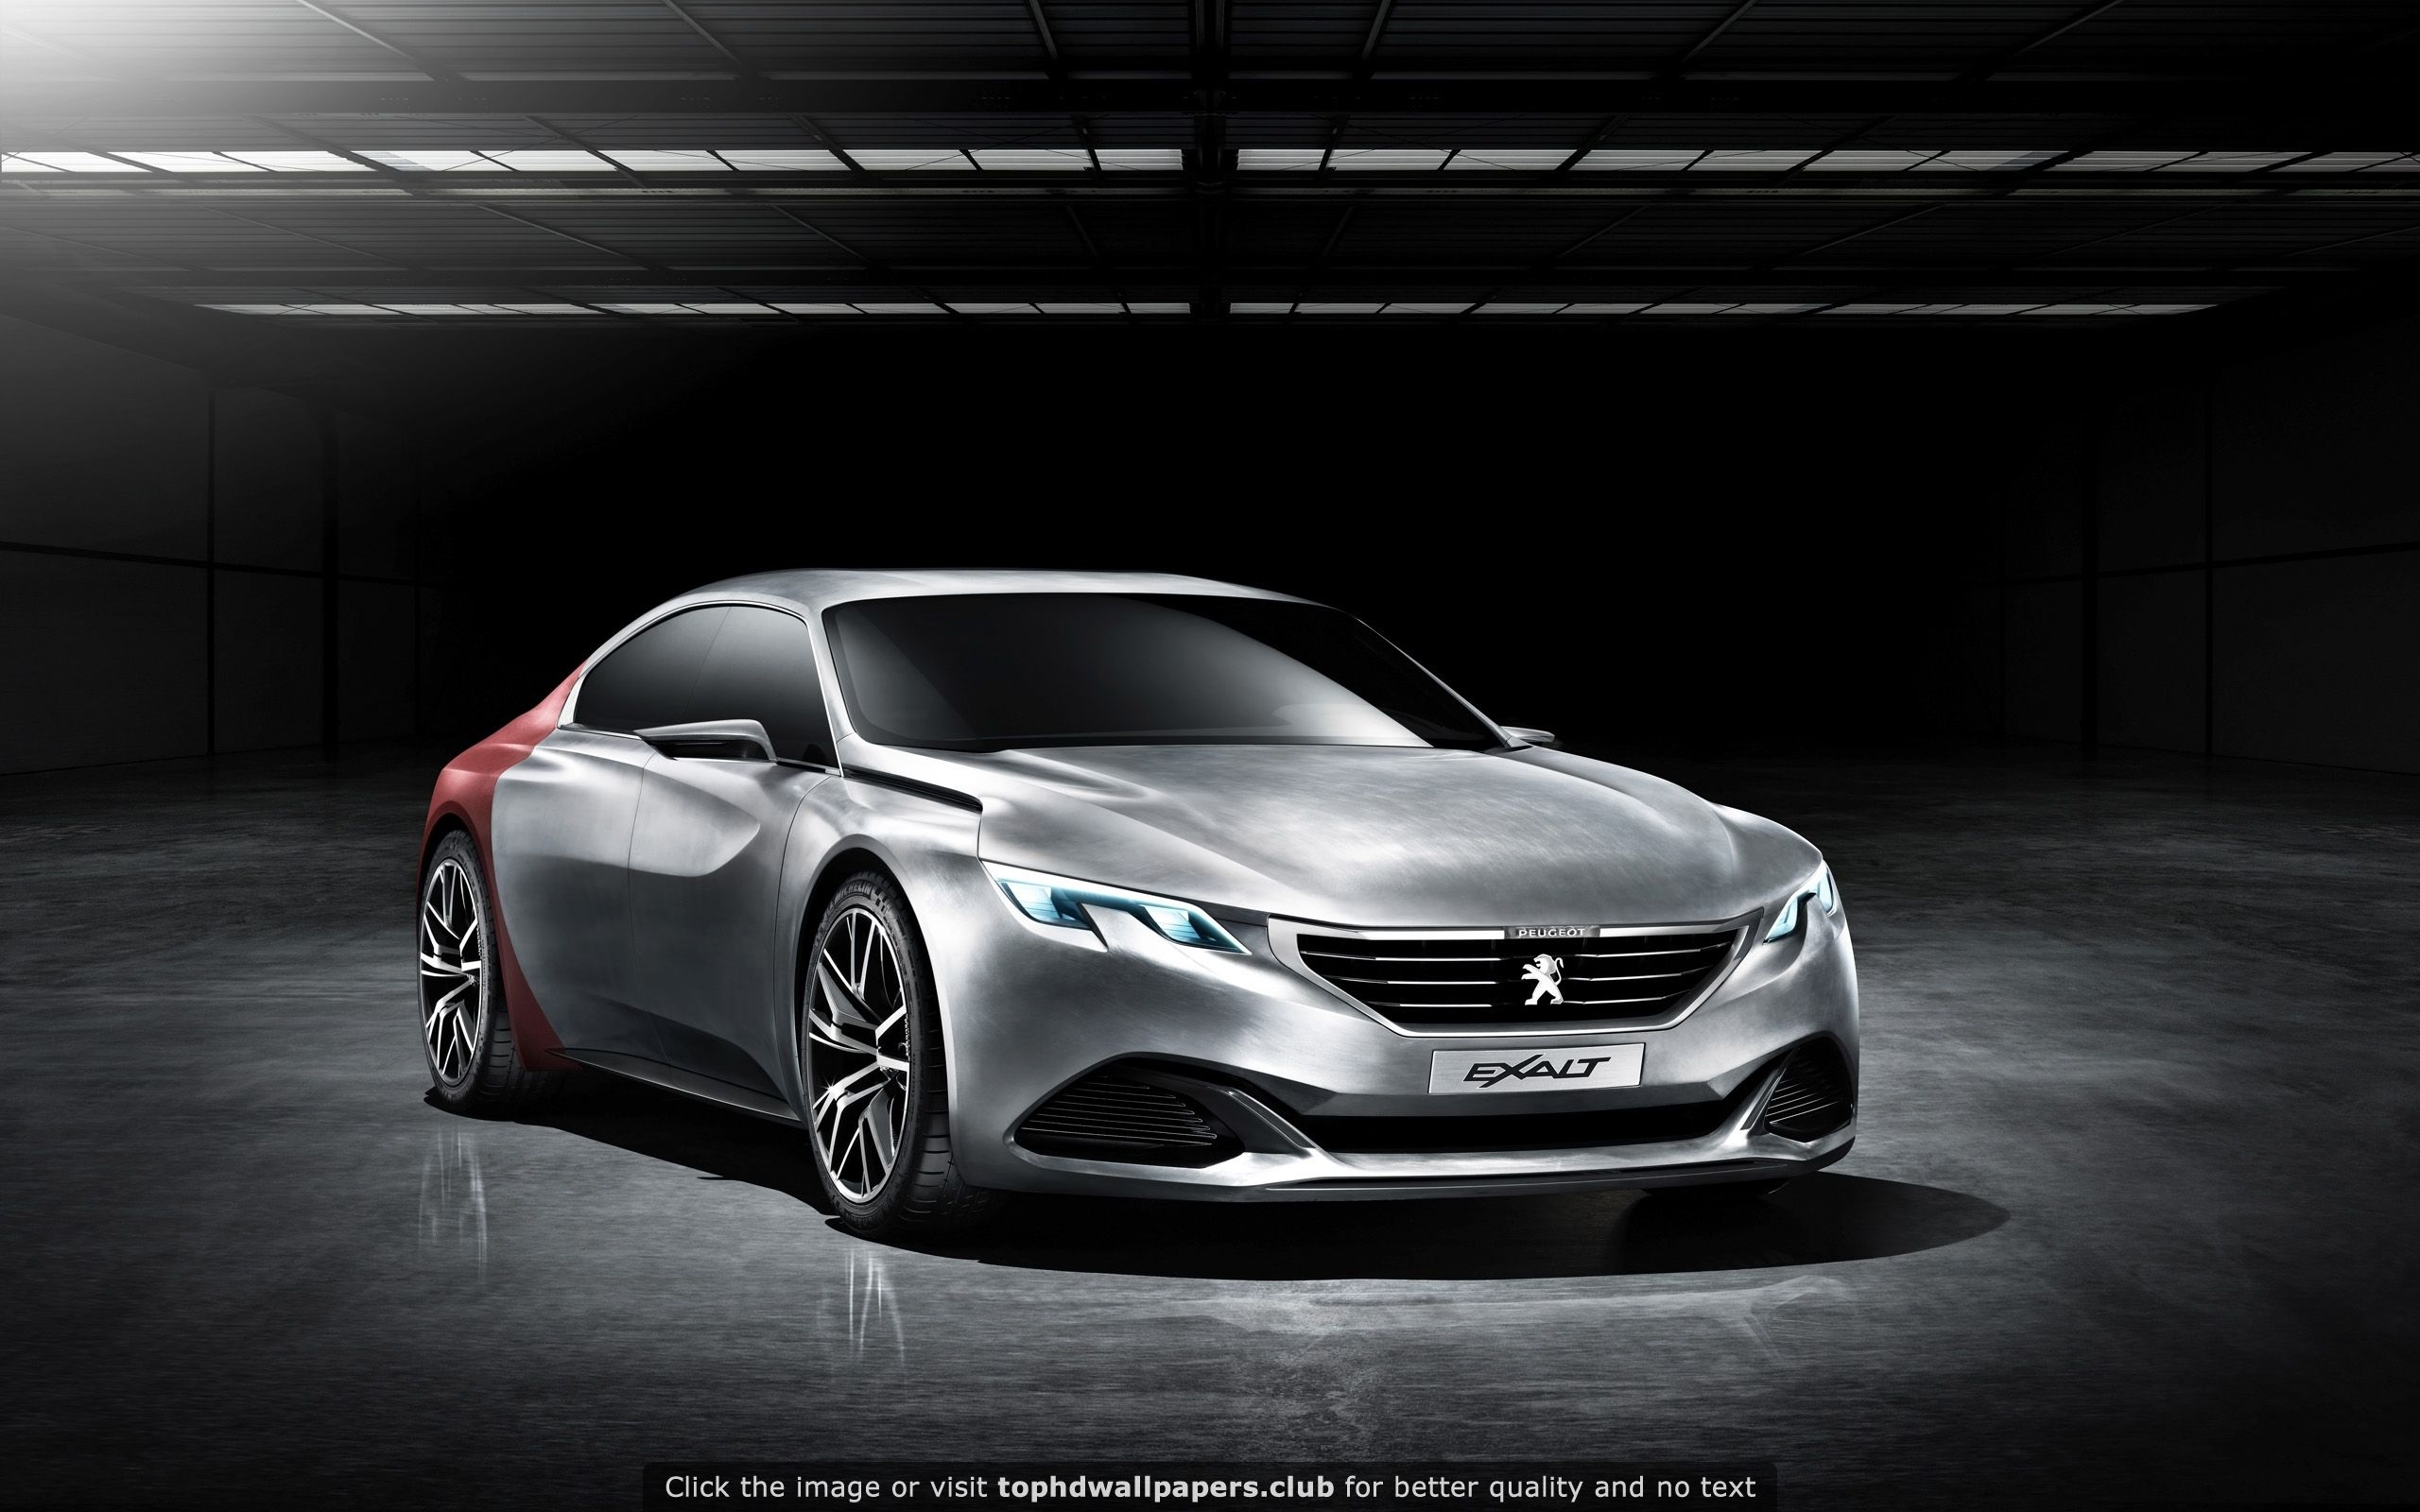 Peugeot Exalt Concept 2014 Hd Wallpaper For Your Pc Mac Or Mobile